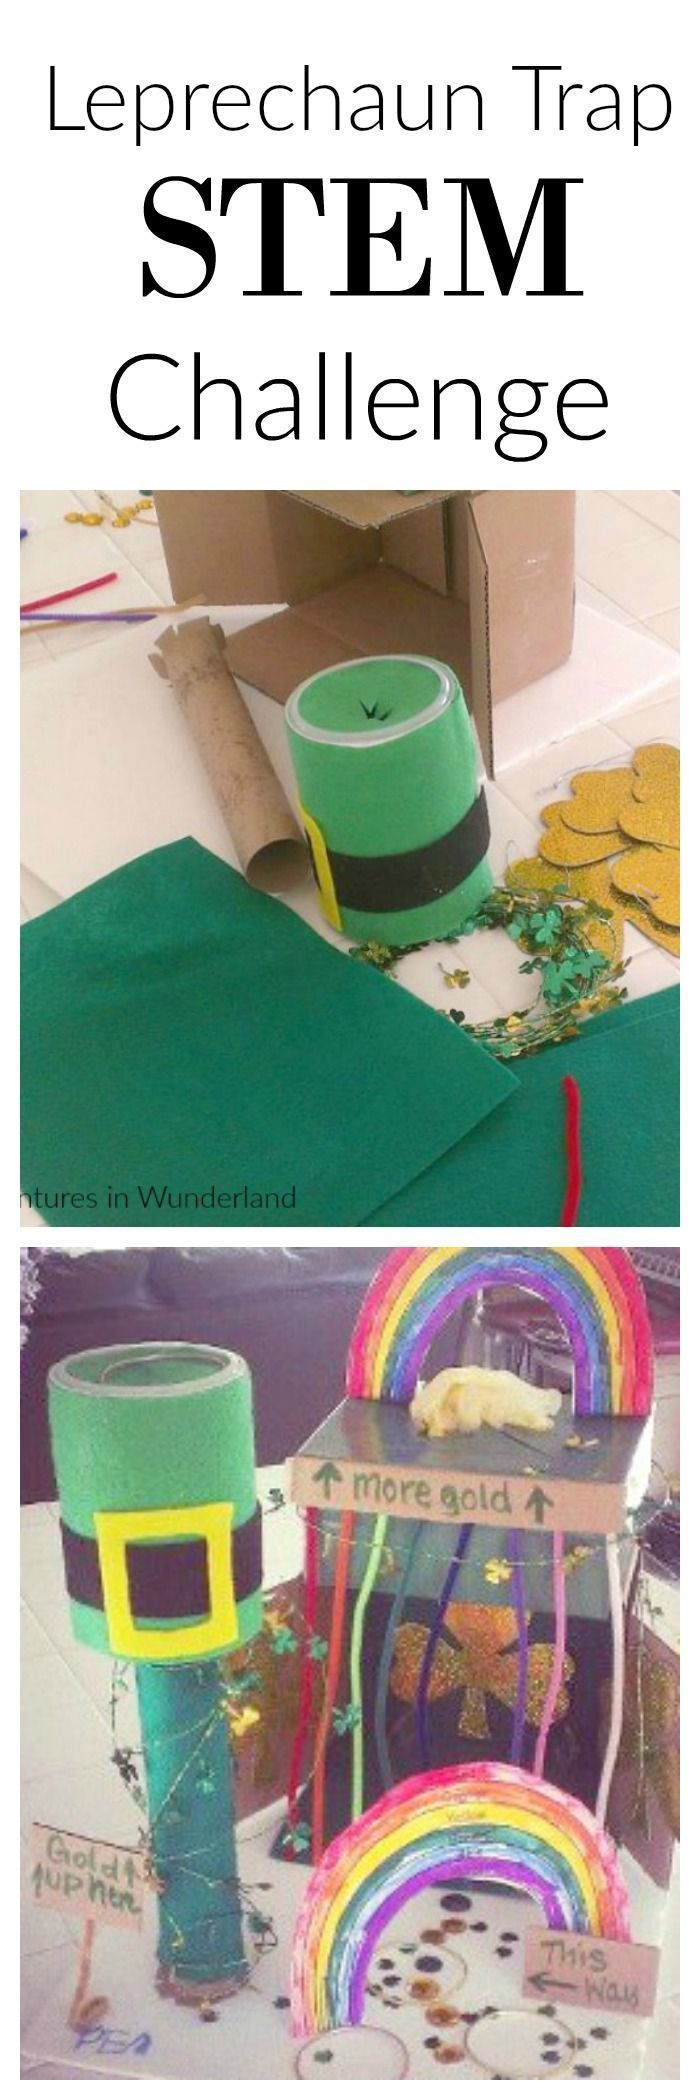 we love this activity!!  Use recycled materials to create a leprechaun trap.  Great STEM challenge for the kids!